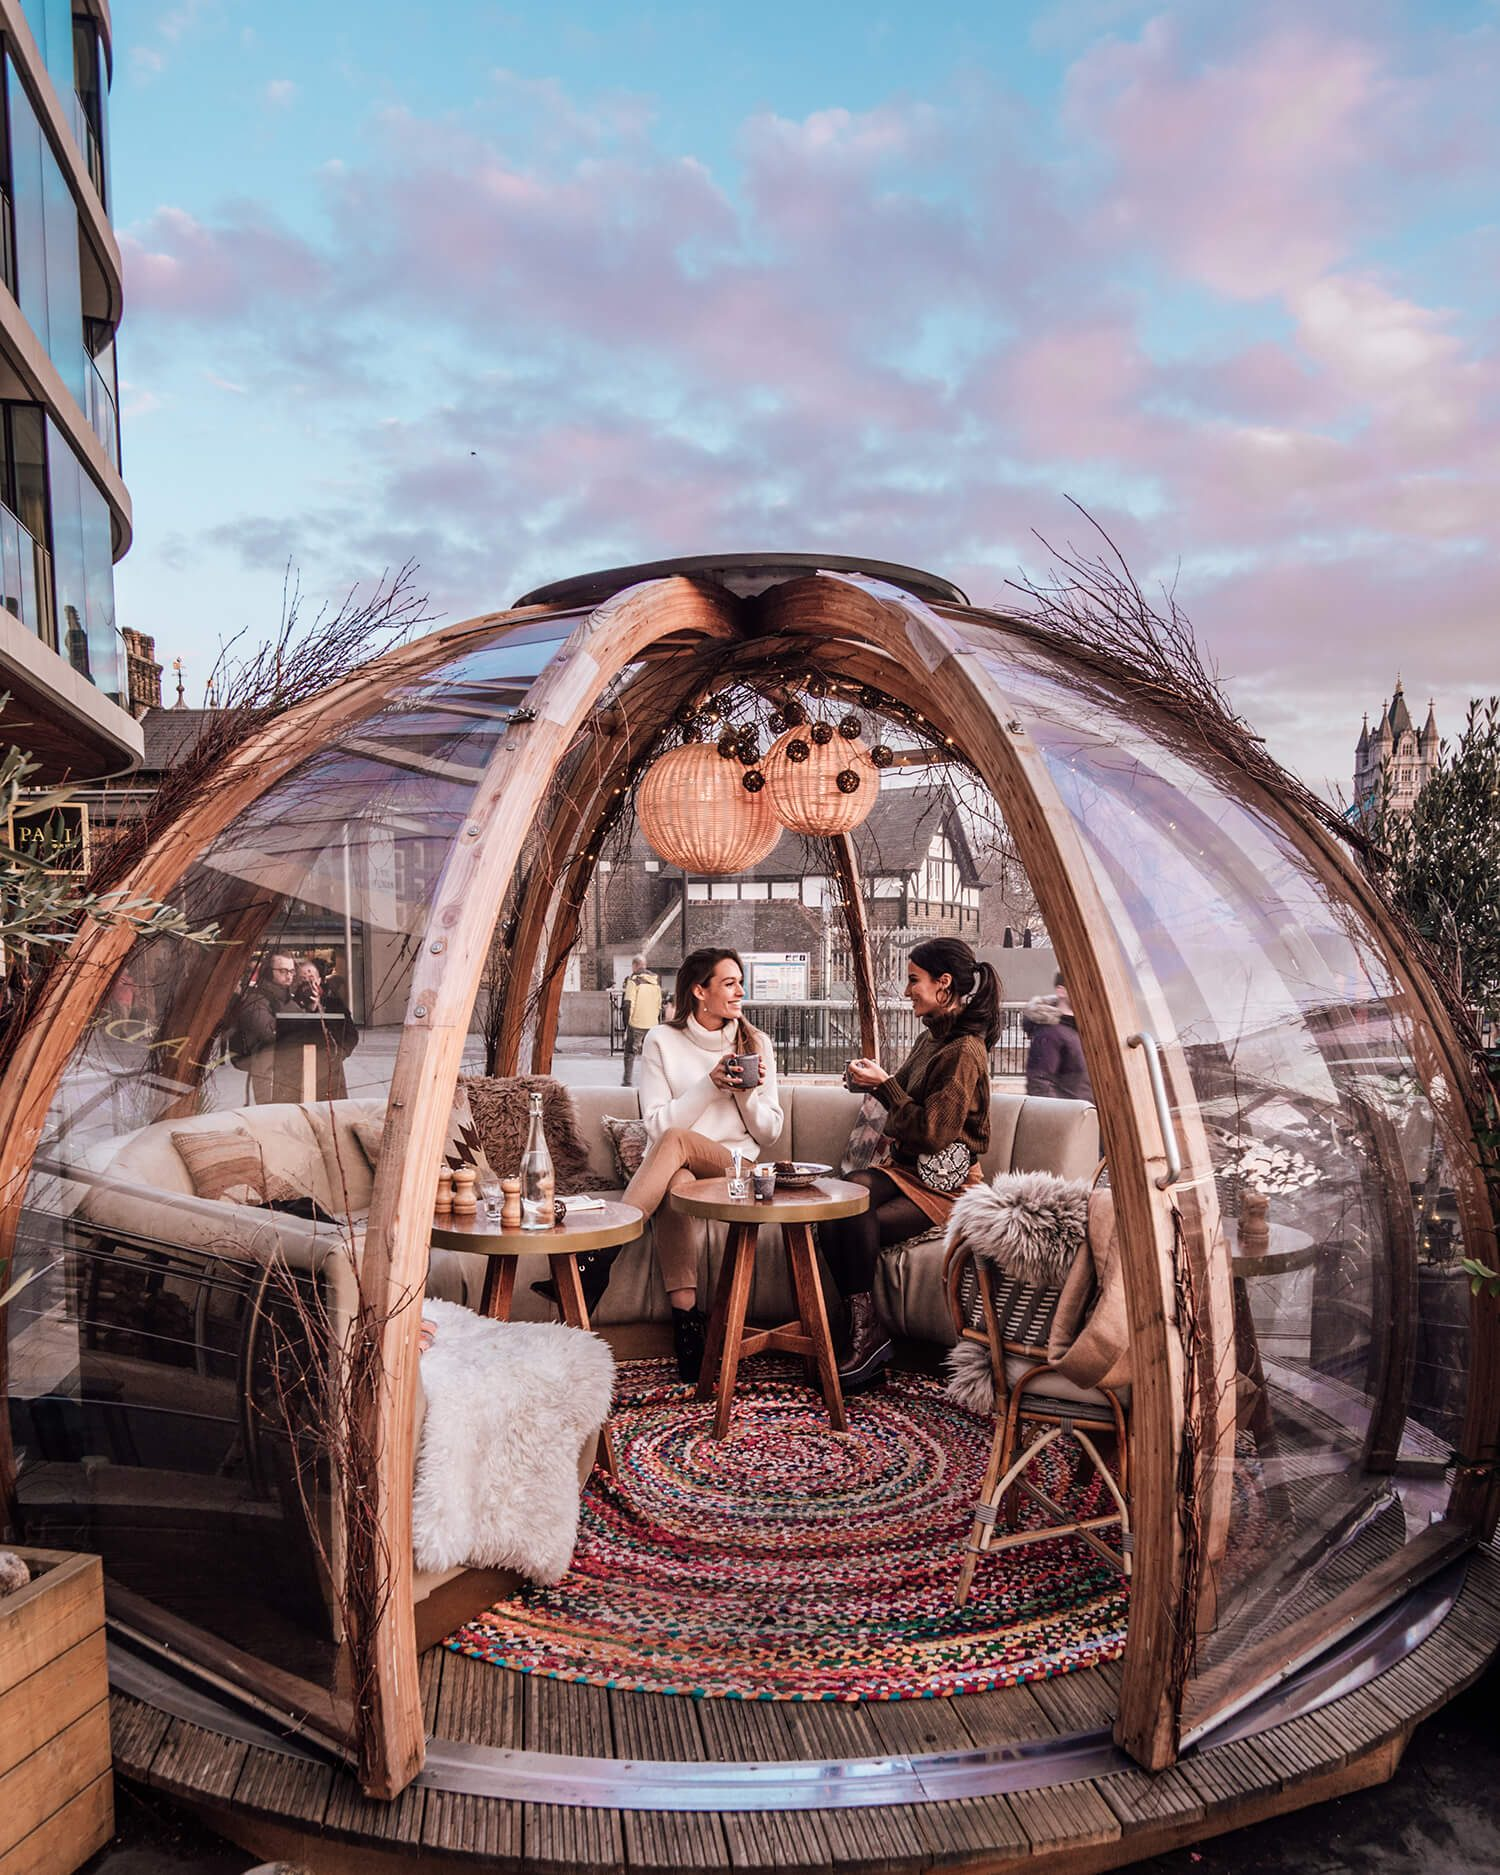 Cosy Lunchtimes in London Winter Igloos